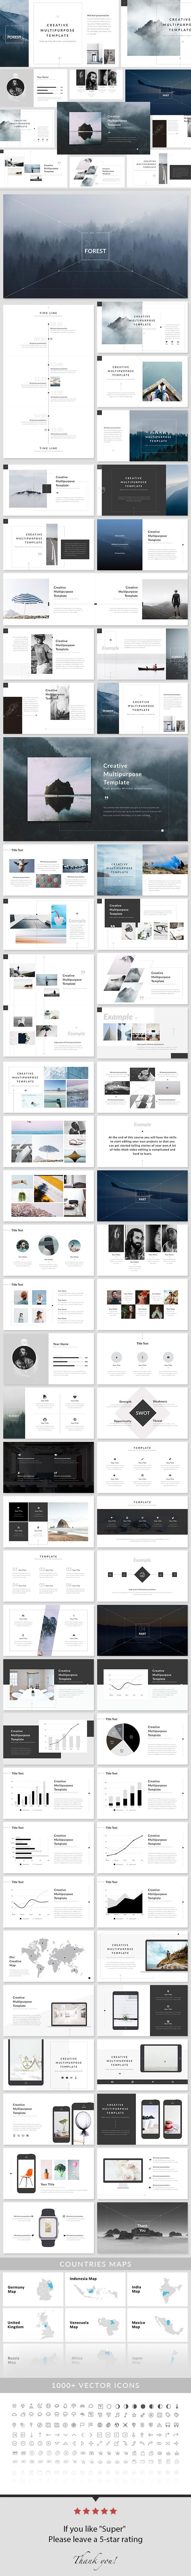 Create powerpoint template create powerpoint template creative forest powerpoint presentation template toneelgroepblik Gallery